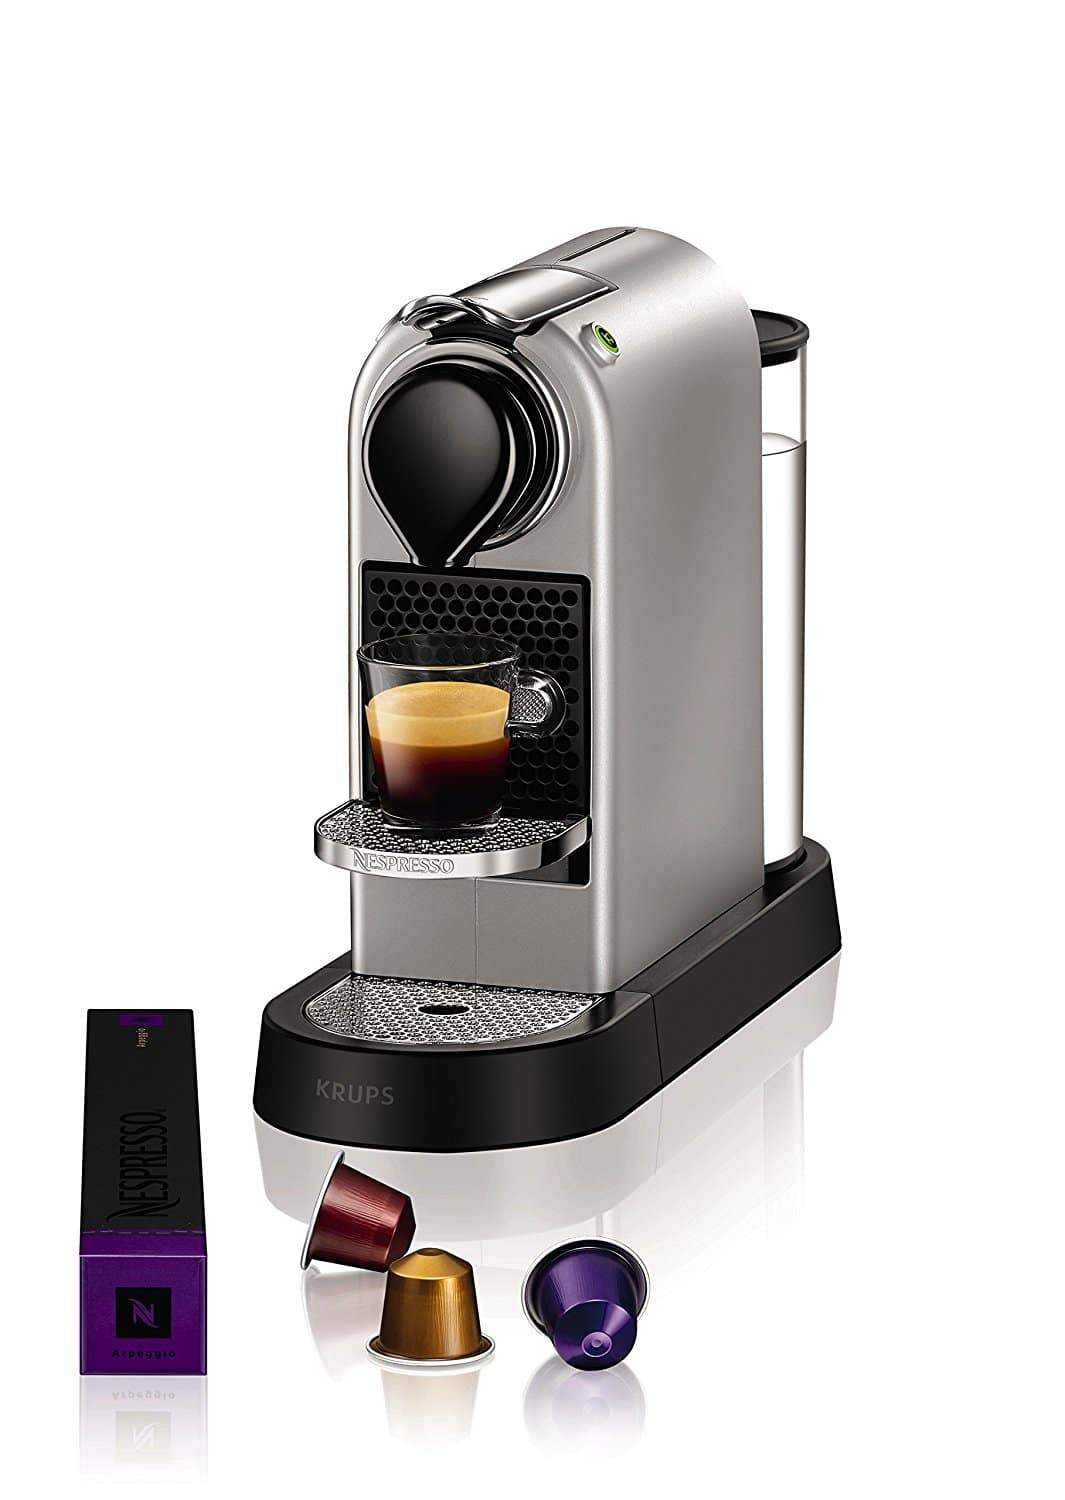 krups citiz cafeti re nespresso machine espresso. Black Bedroom Furniture Sets. Home Design Ideas